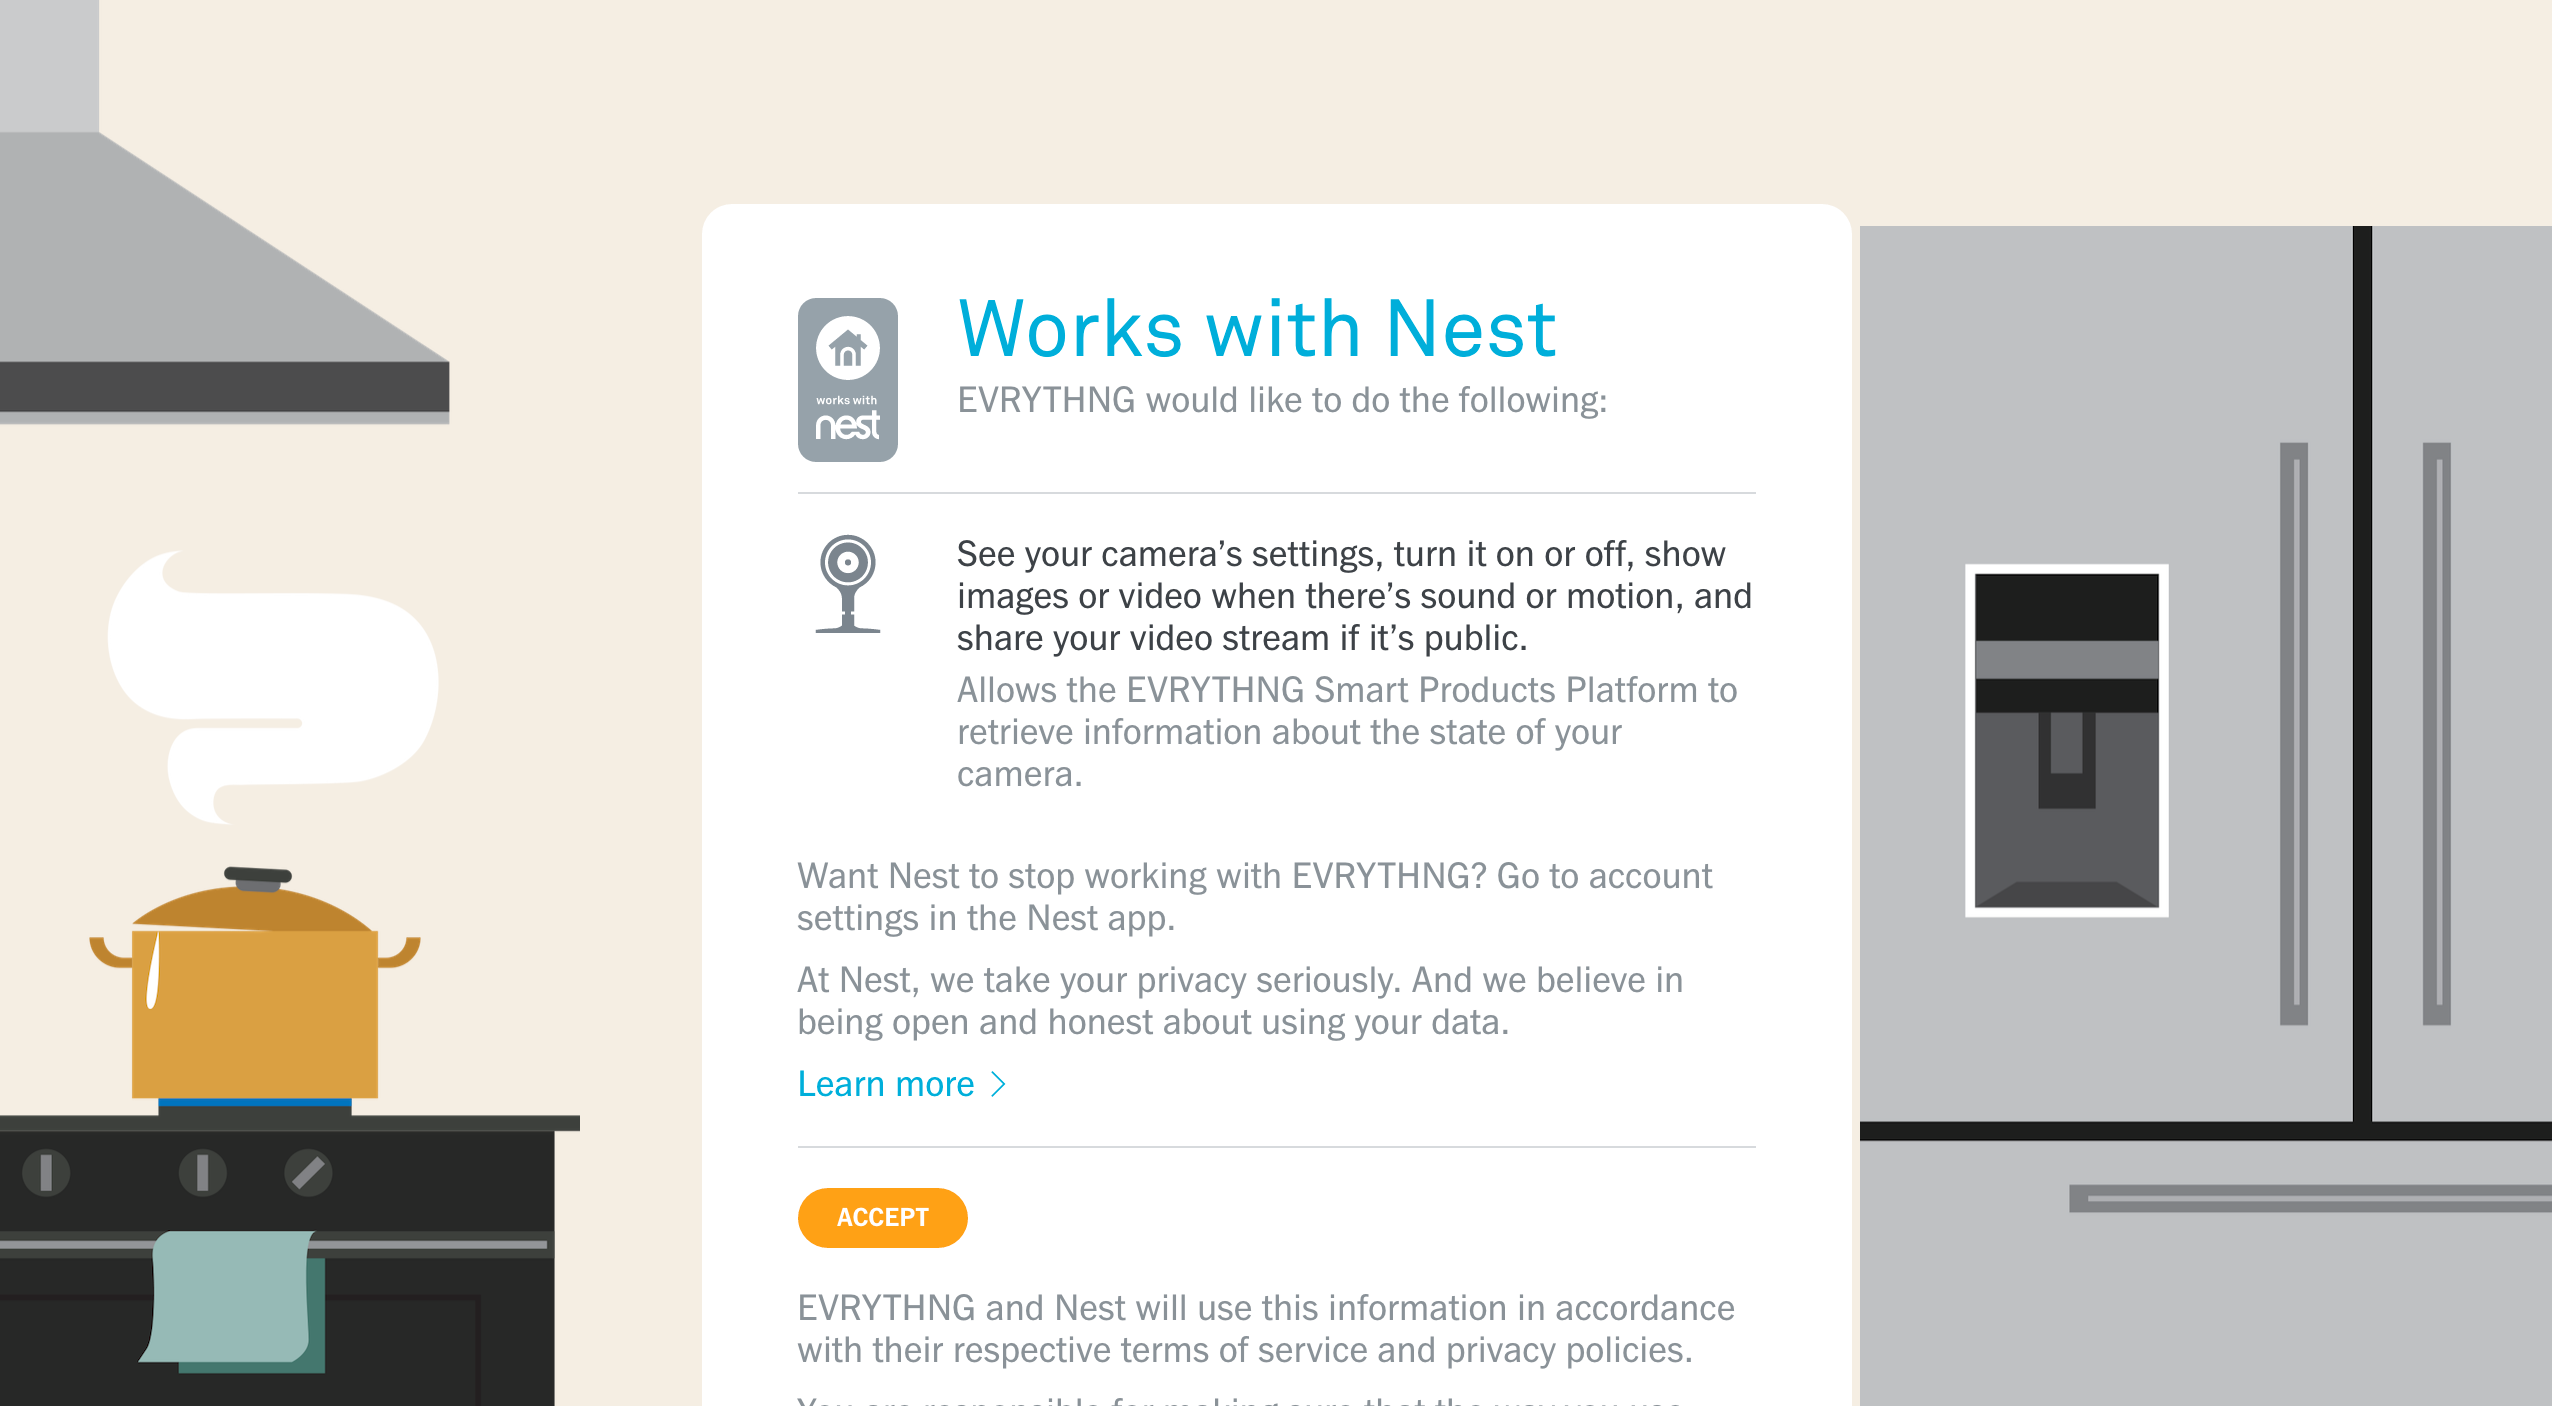 Connecting with Nest